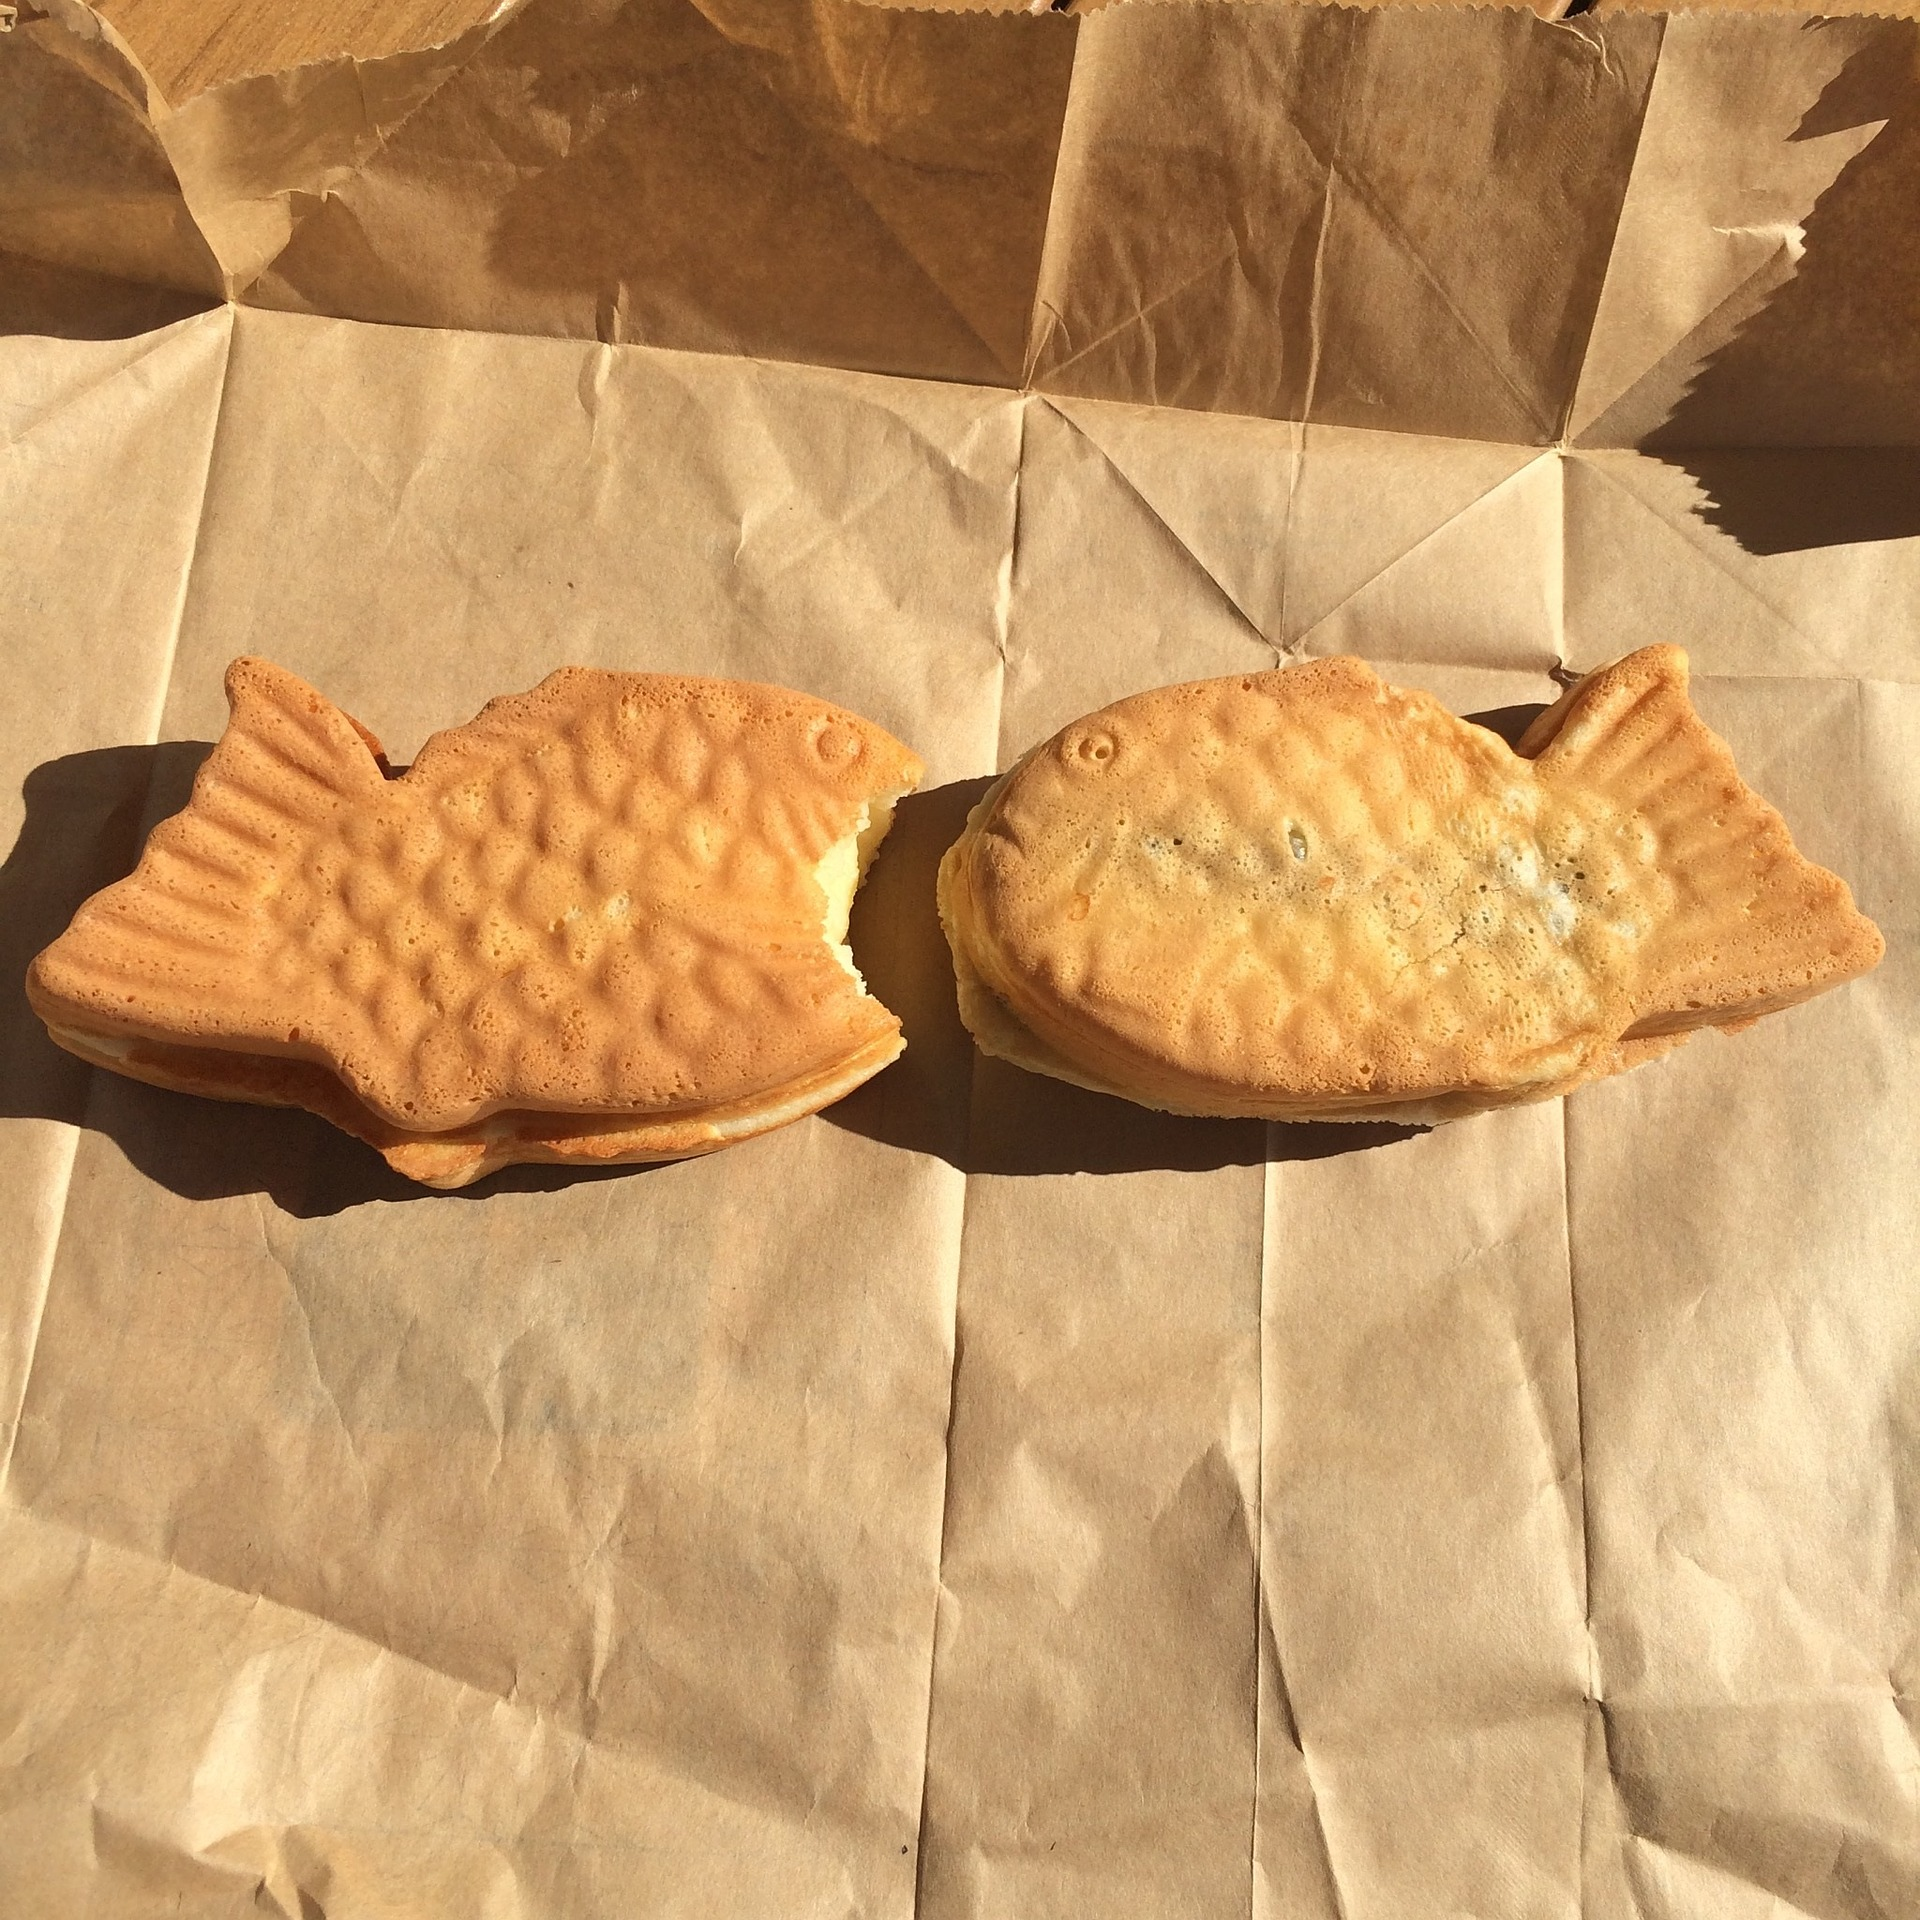 Two bungeoppang: hot pastries shaped like fish and filled with a sweet red bean paste.